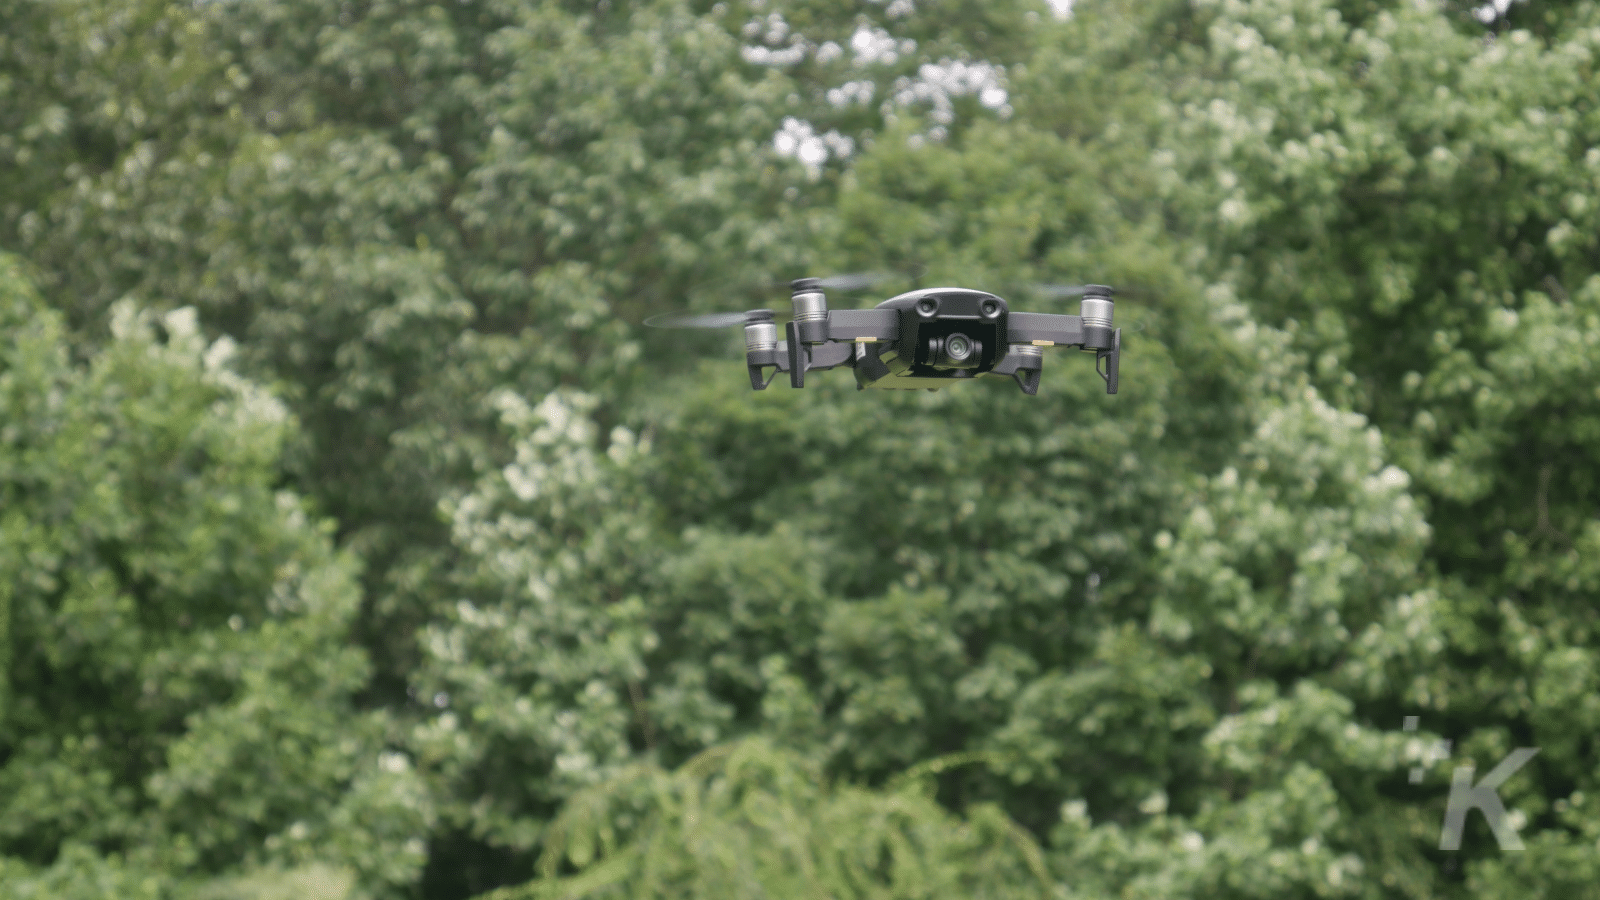 dji mavic air in flight in front of trees